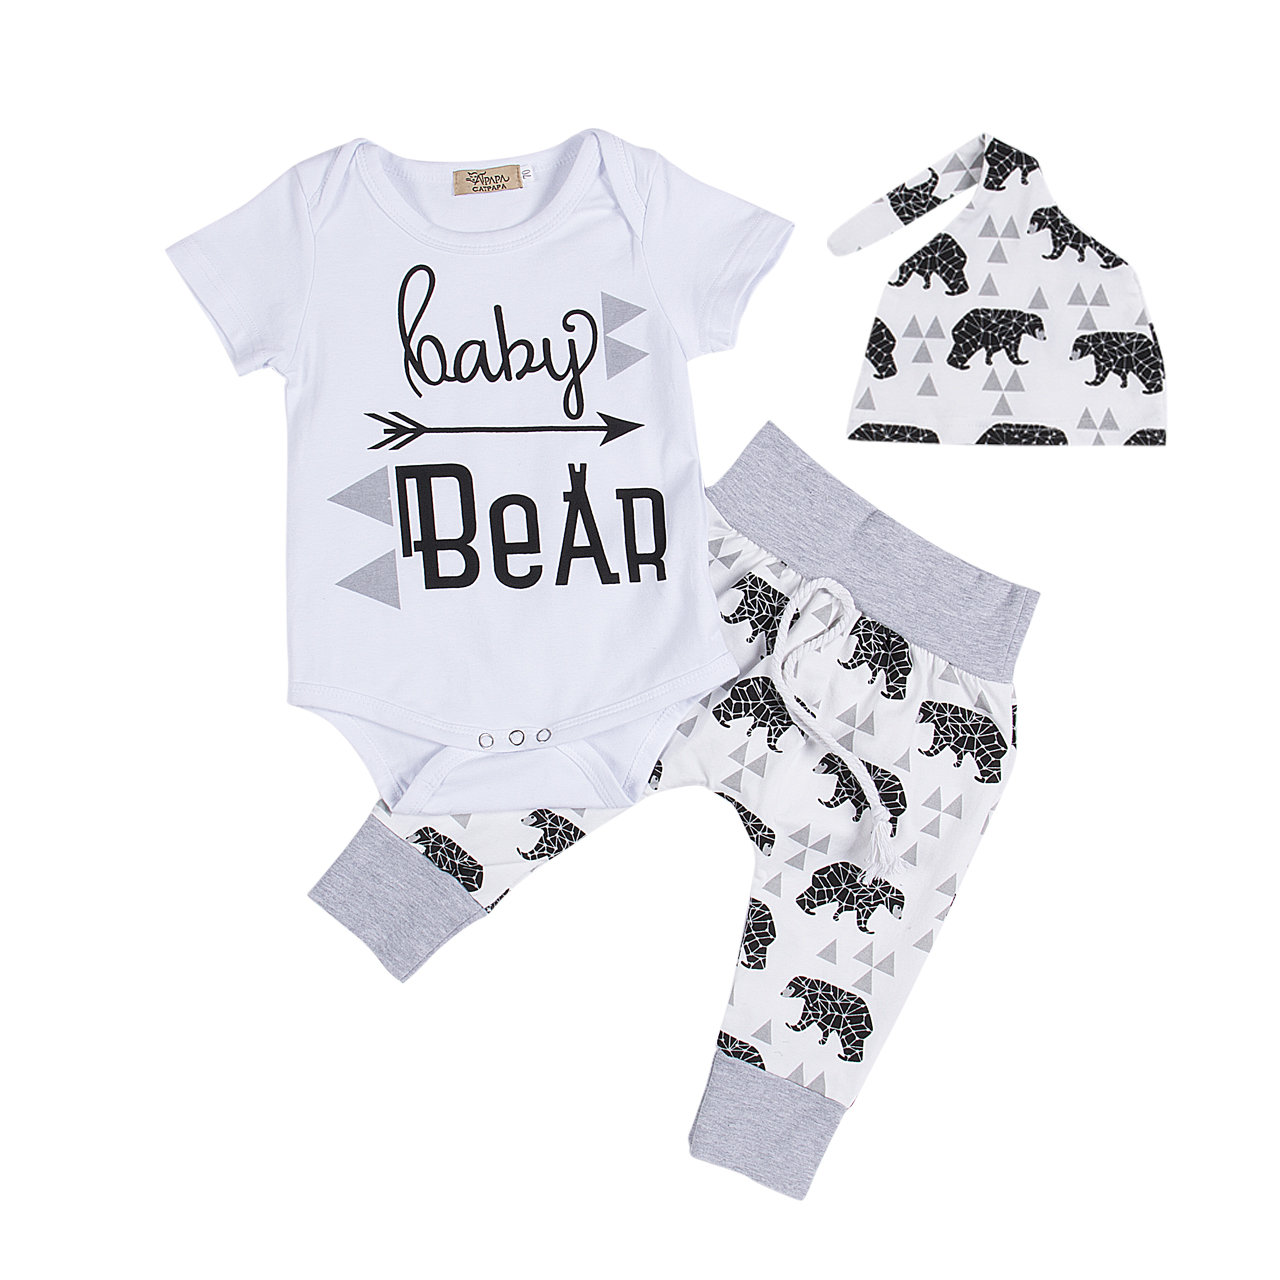 3PCS Set Newborn Infant Baby Clothes Short Sleeve Baby Bear Boys Girls Romper Pant Hat Outfit Bebek Giyim Clothing Costume 2017 floral baby romper newborn baby girl clothes ruffles sleeve bodysuit headband 2pcs outfit bebek giyim sunsuit 0 24m